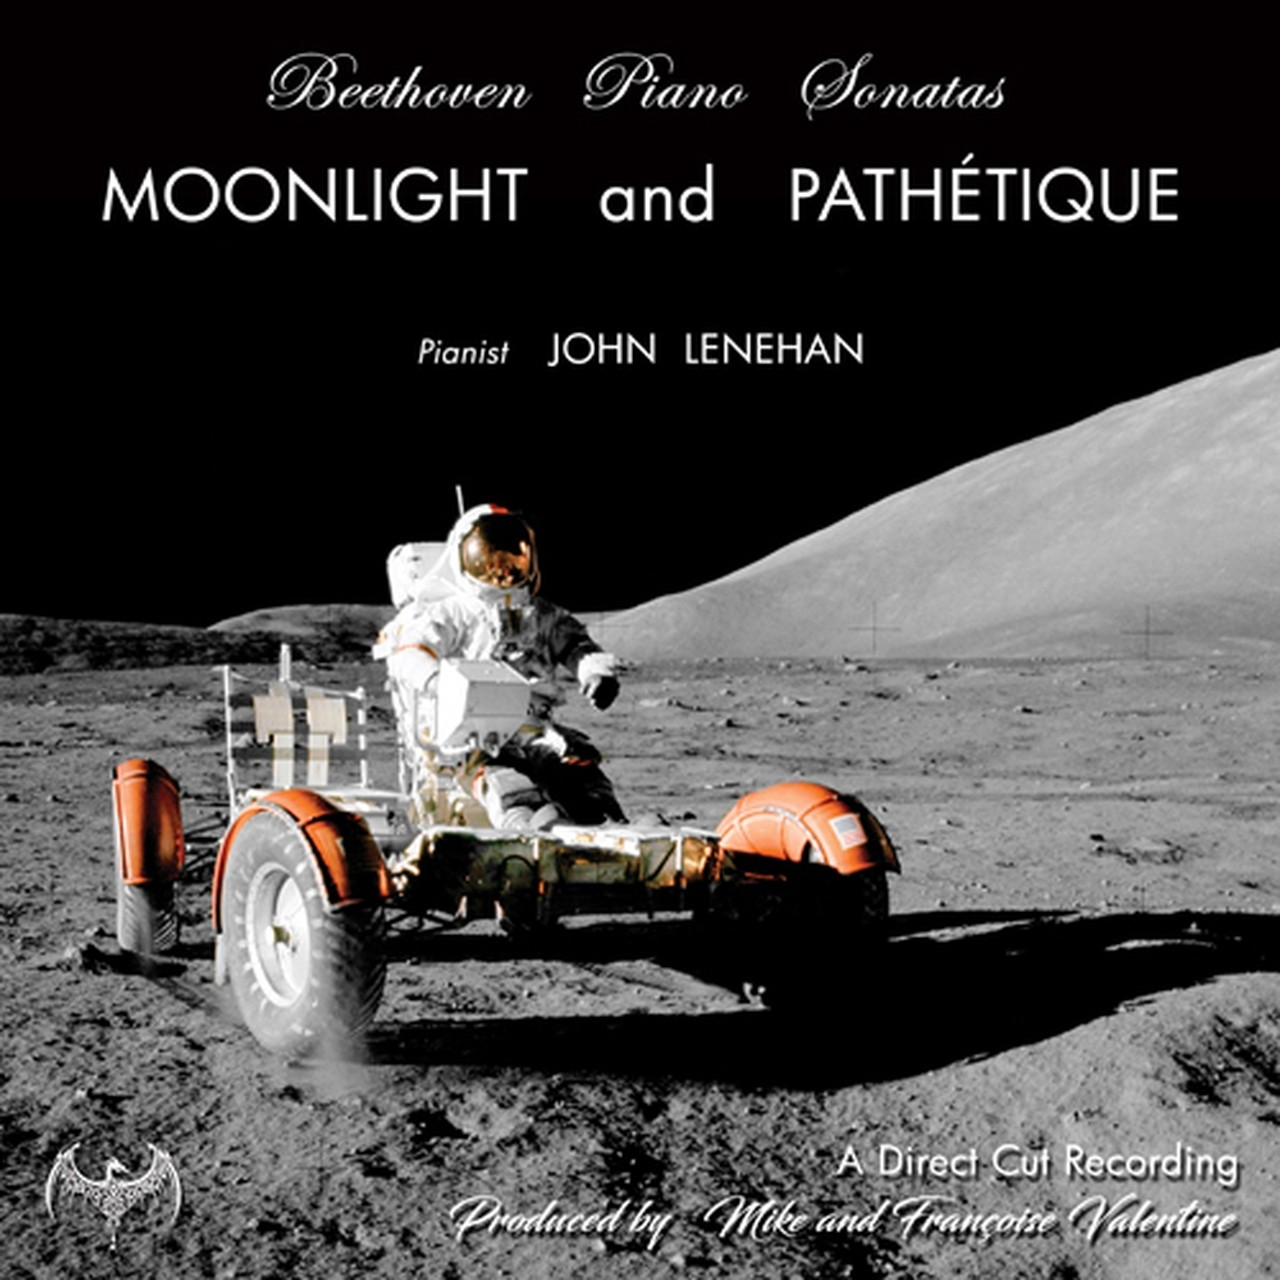 John Lenehan - Beethoven Piano Sonatas: Moonlight & Pathetique